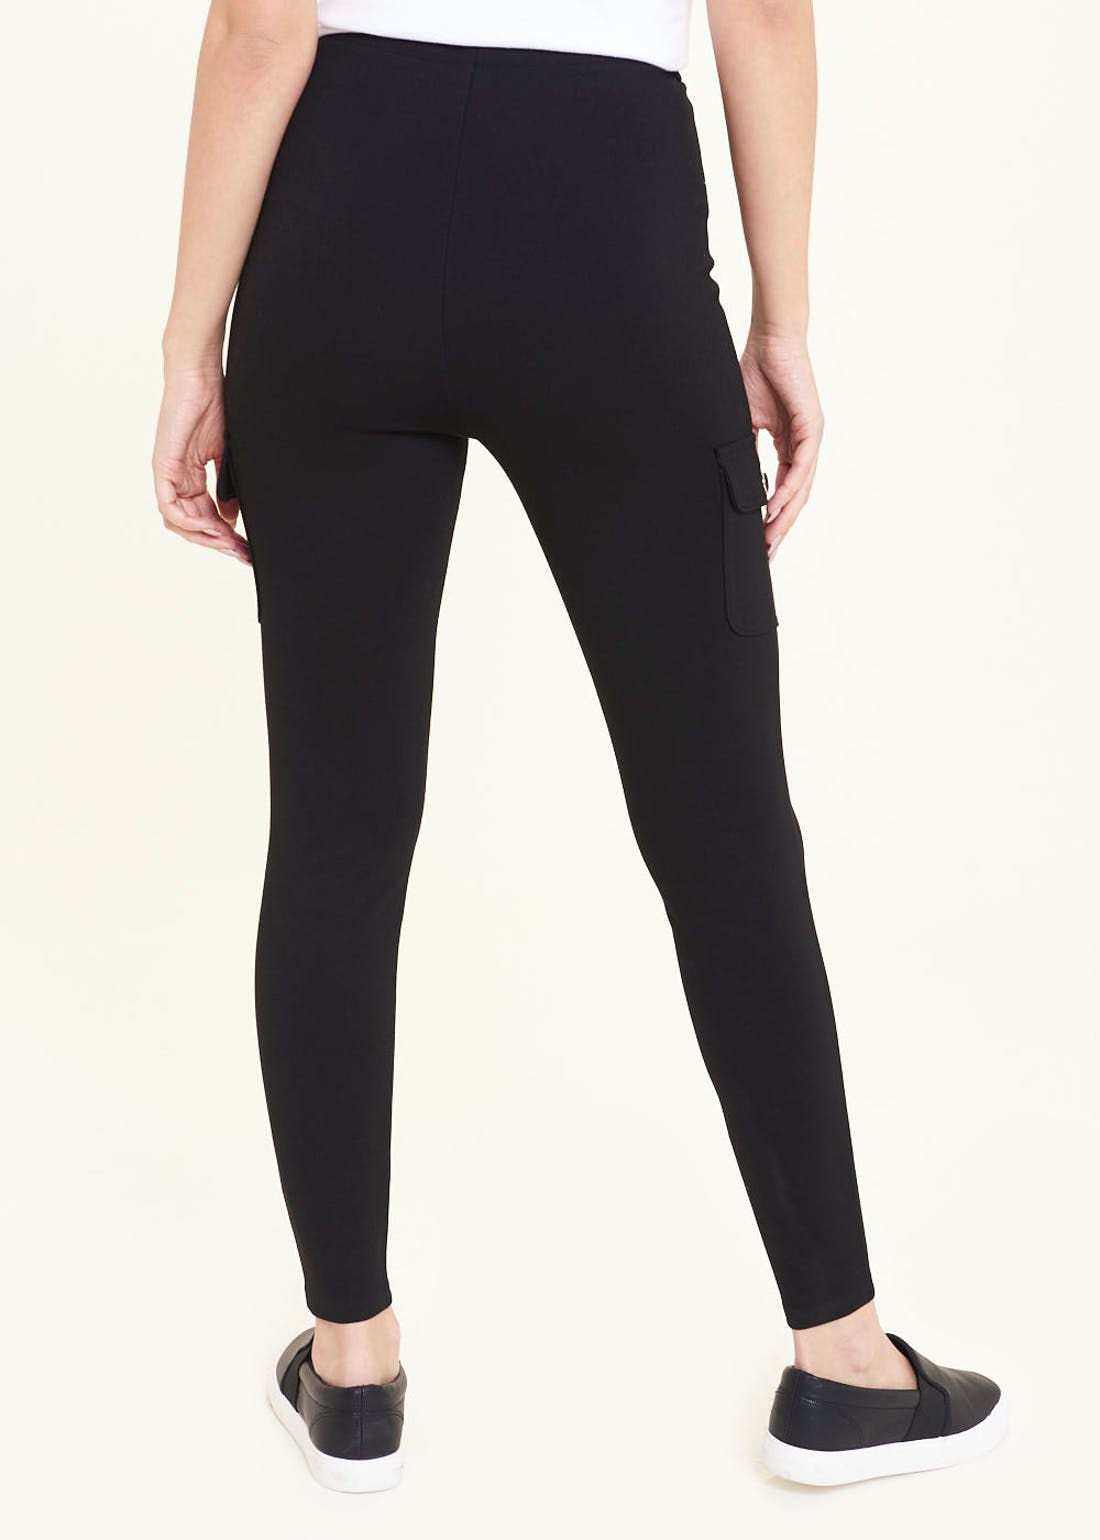 Side Pocket Body Shaper Leggings